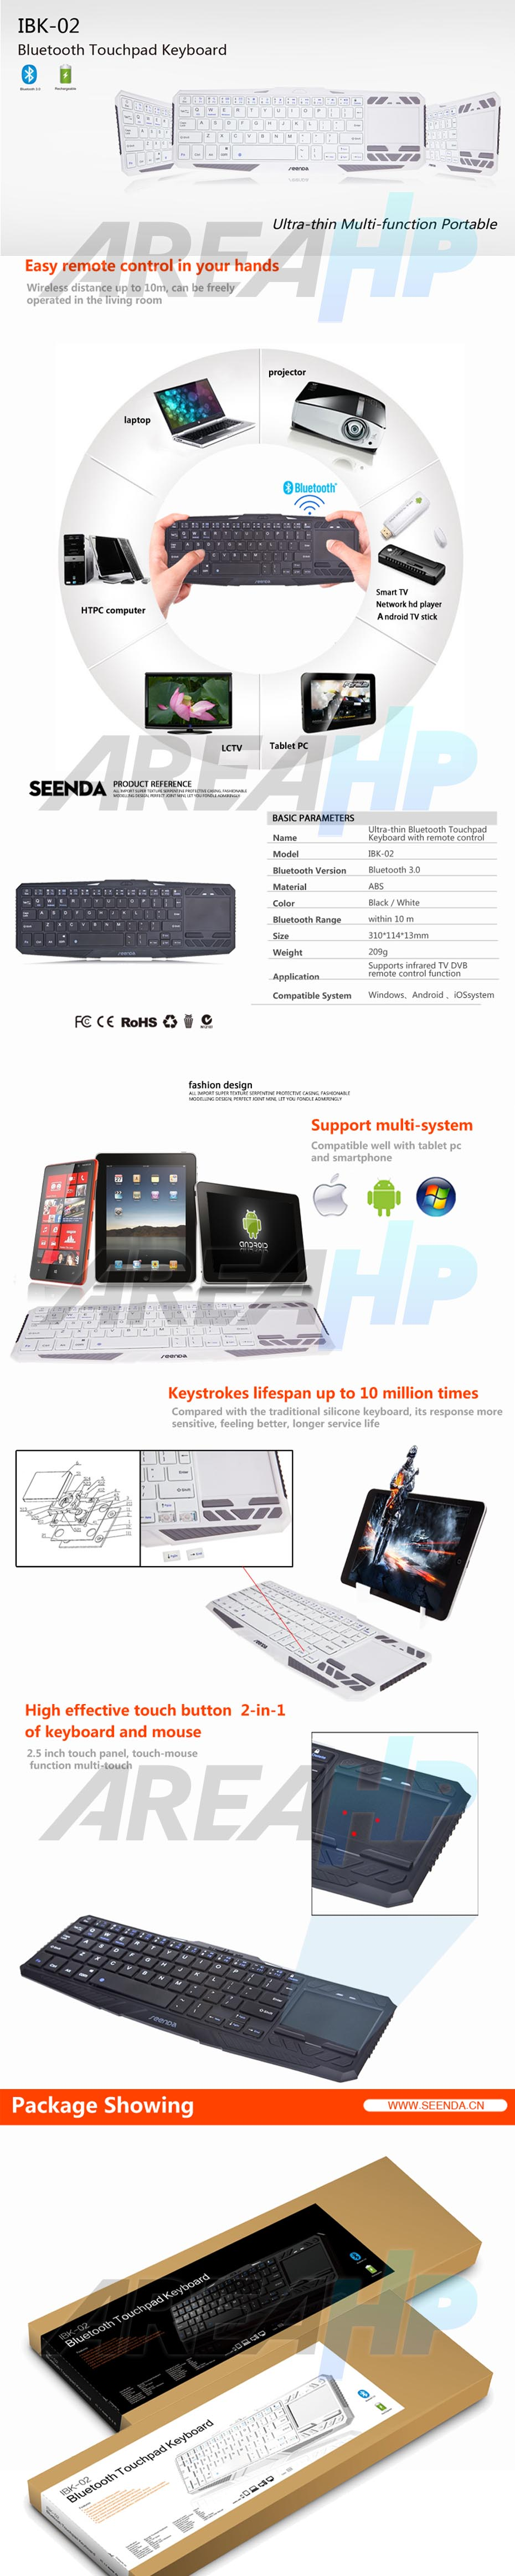 Universal Bluetooth Touchpad Keyboard for All Tablet IOS, Android, Windows Overview